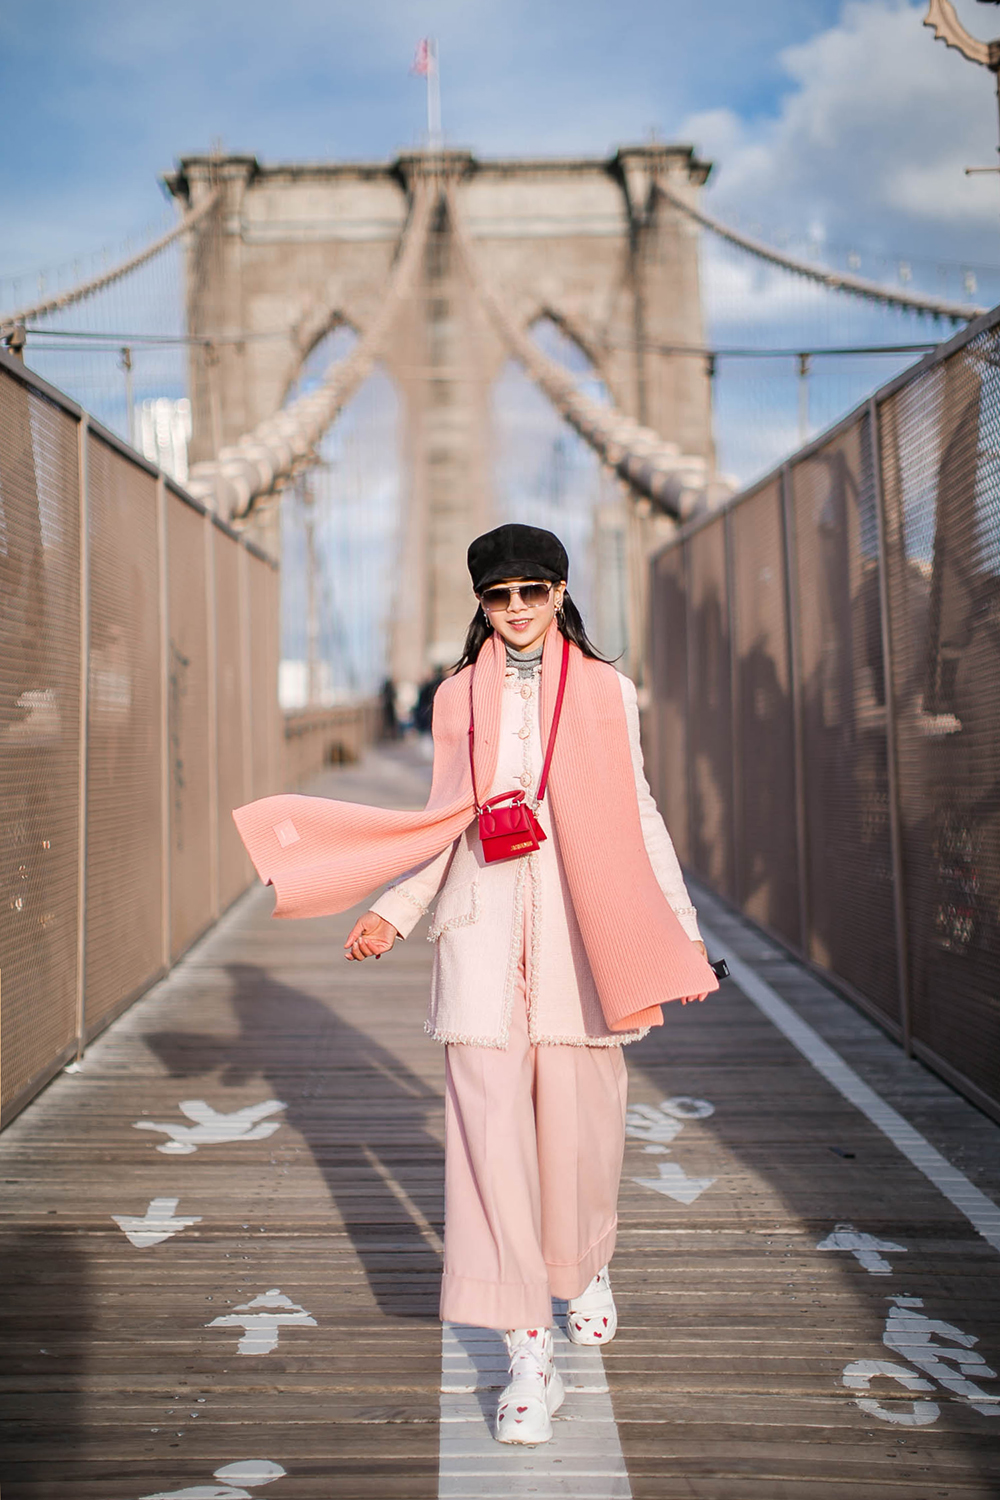 Buberry-heart-sneakers-all-pink-MF-6.jpg